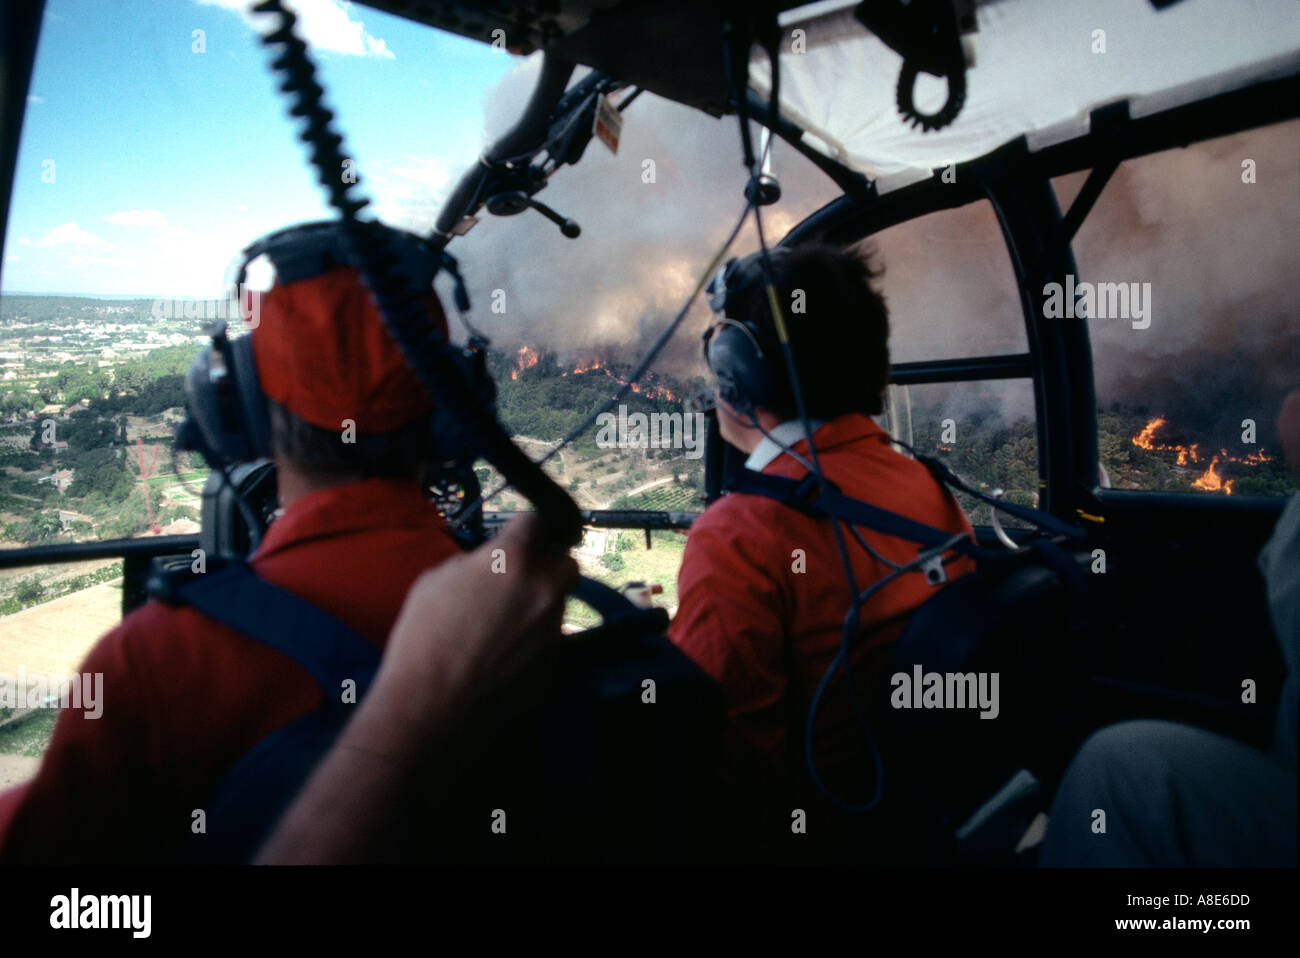 Pilots Inside Cockpit Of Firefighters Alouette III Helicopter In Flight Over A Wildfire Provence France